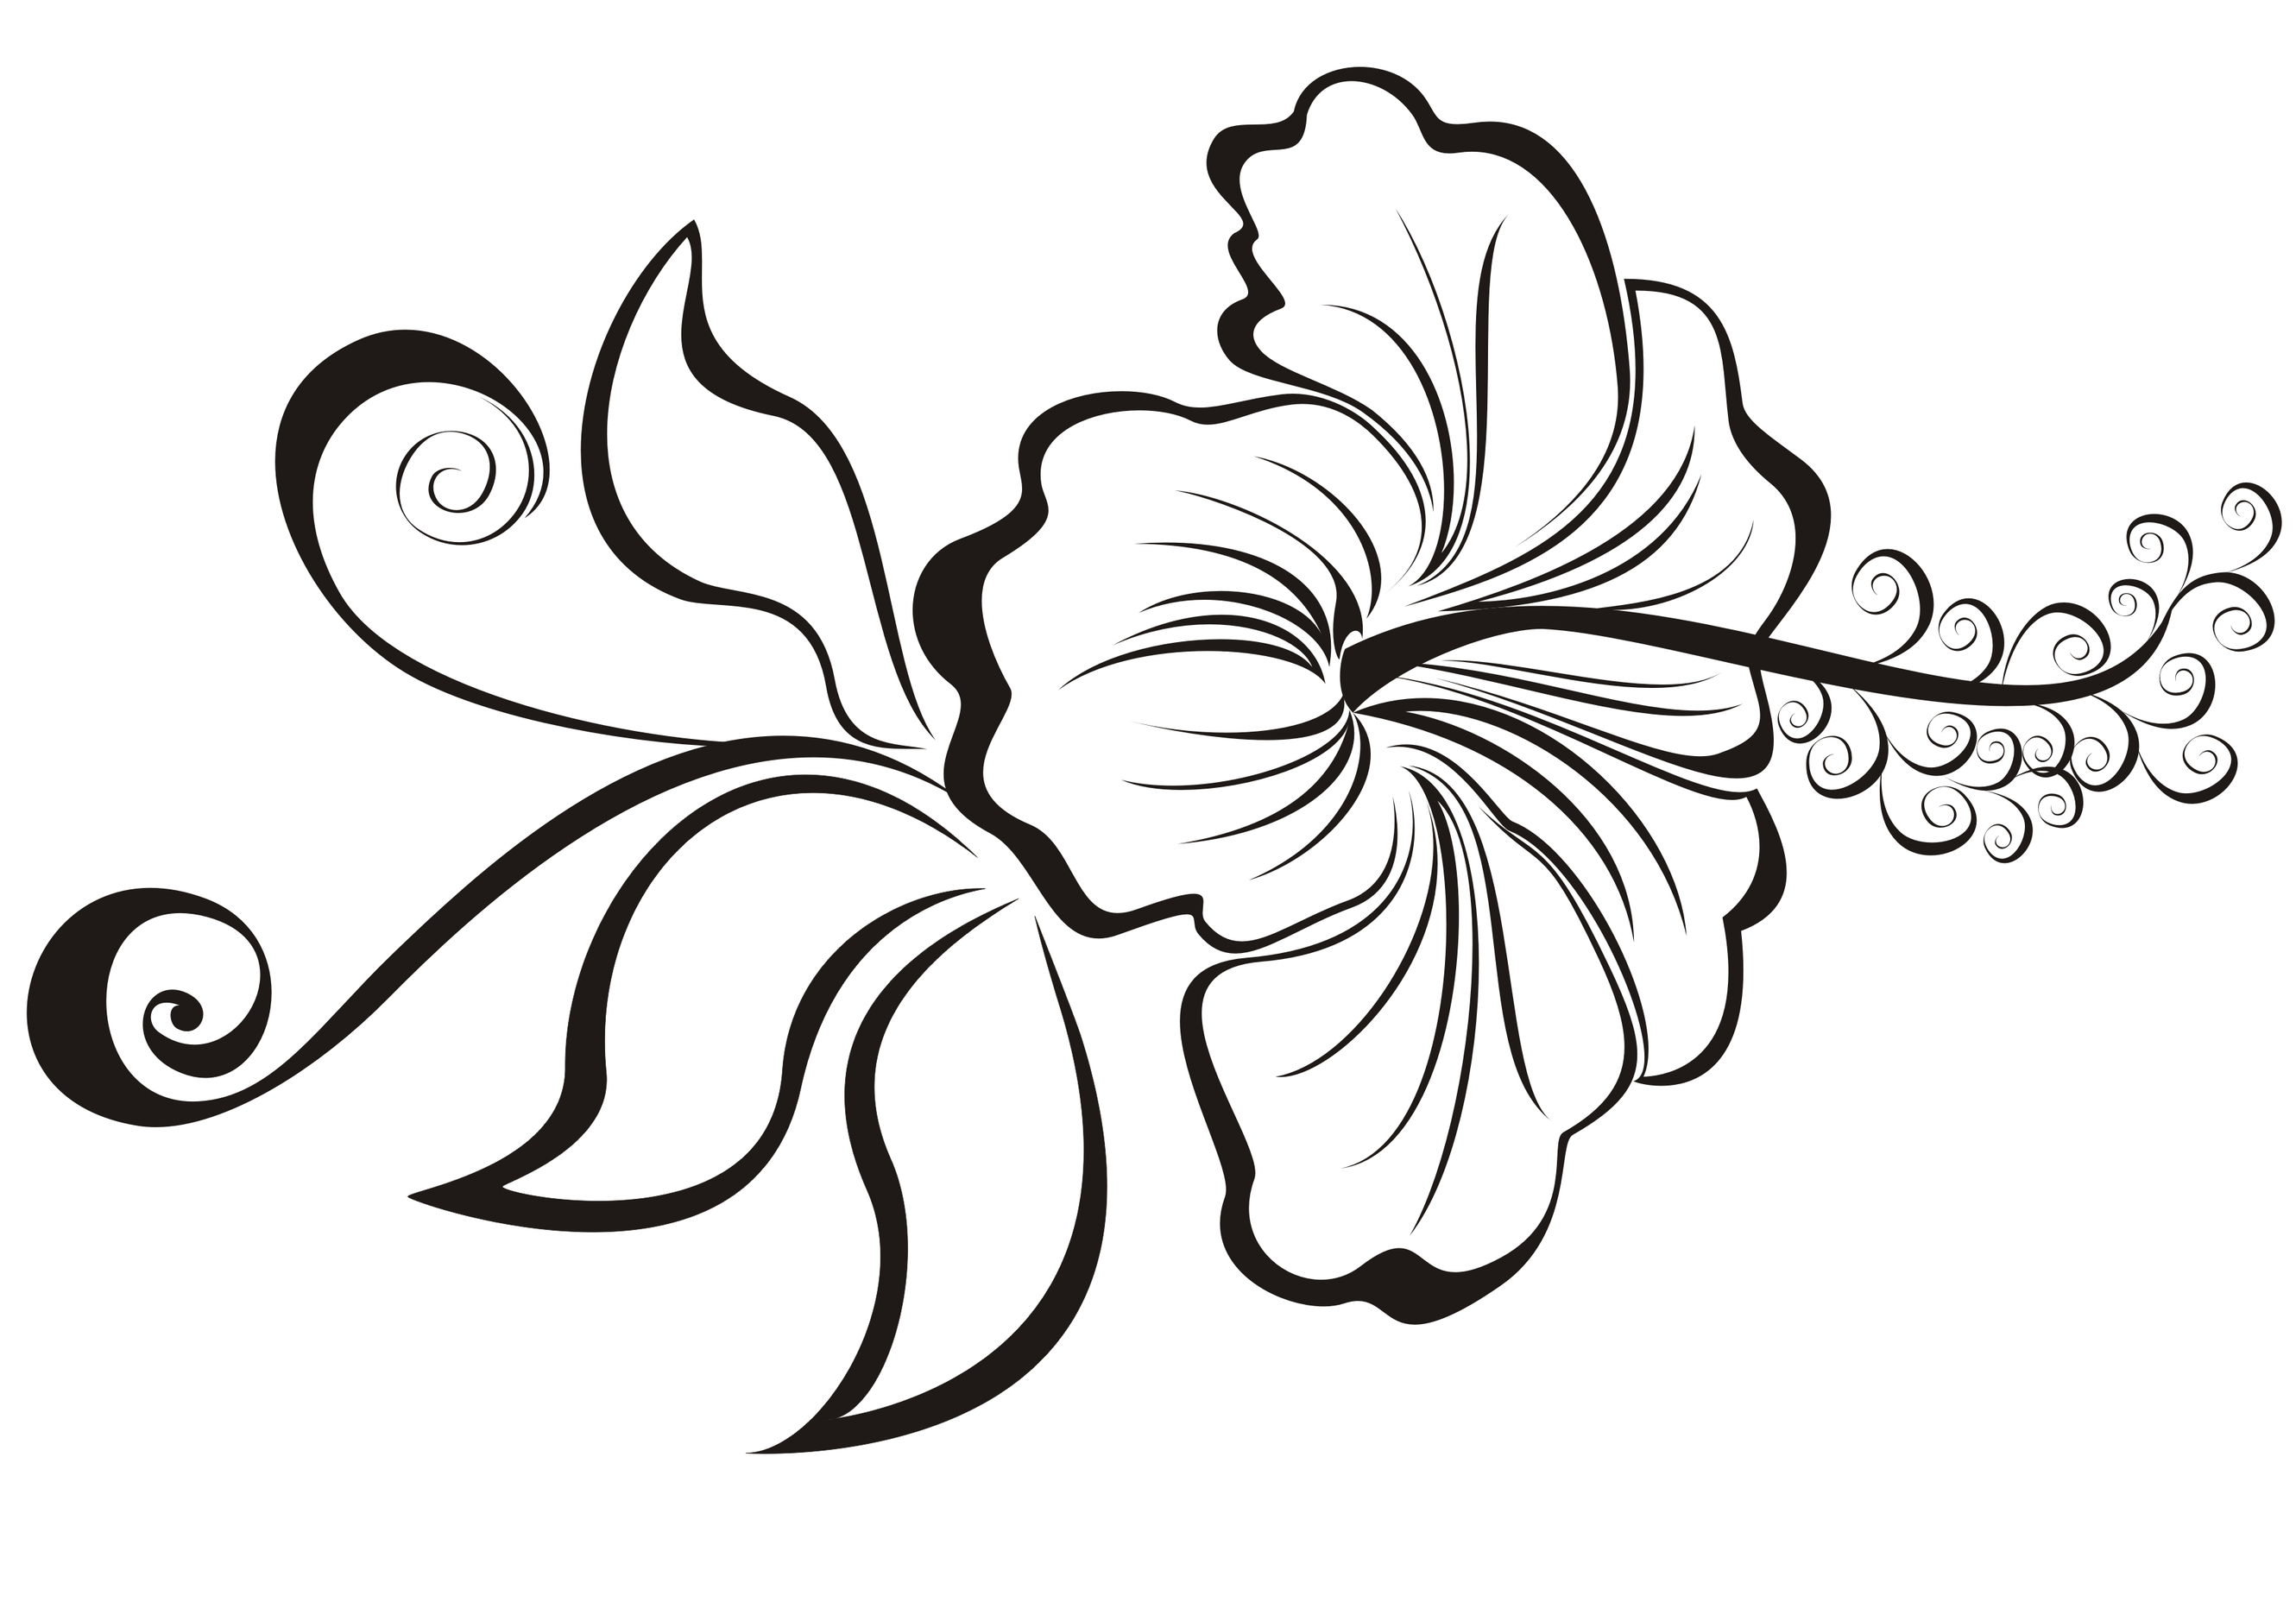 Tribal Flower Drawing At Getdrawings Free For Personal Use